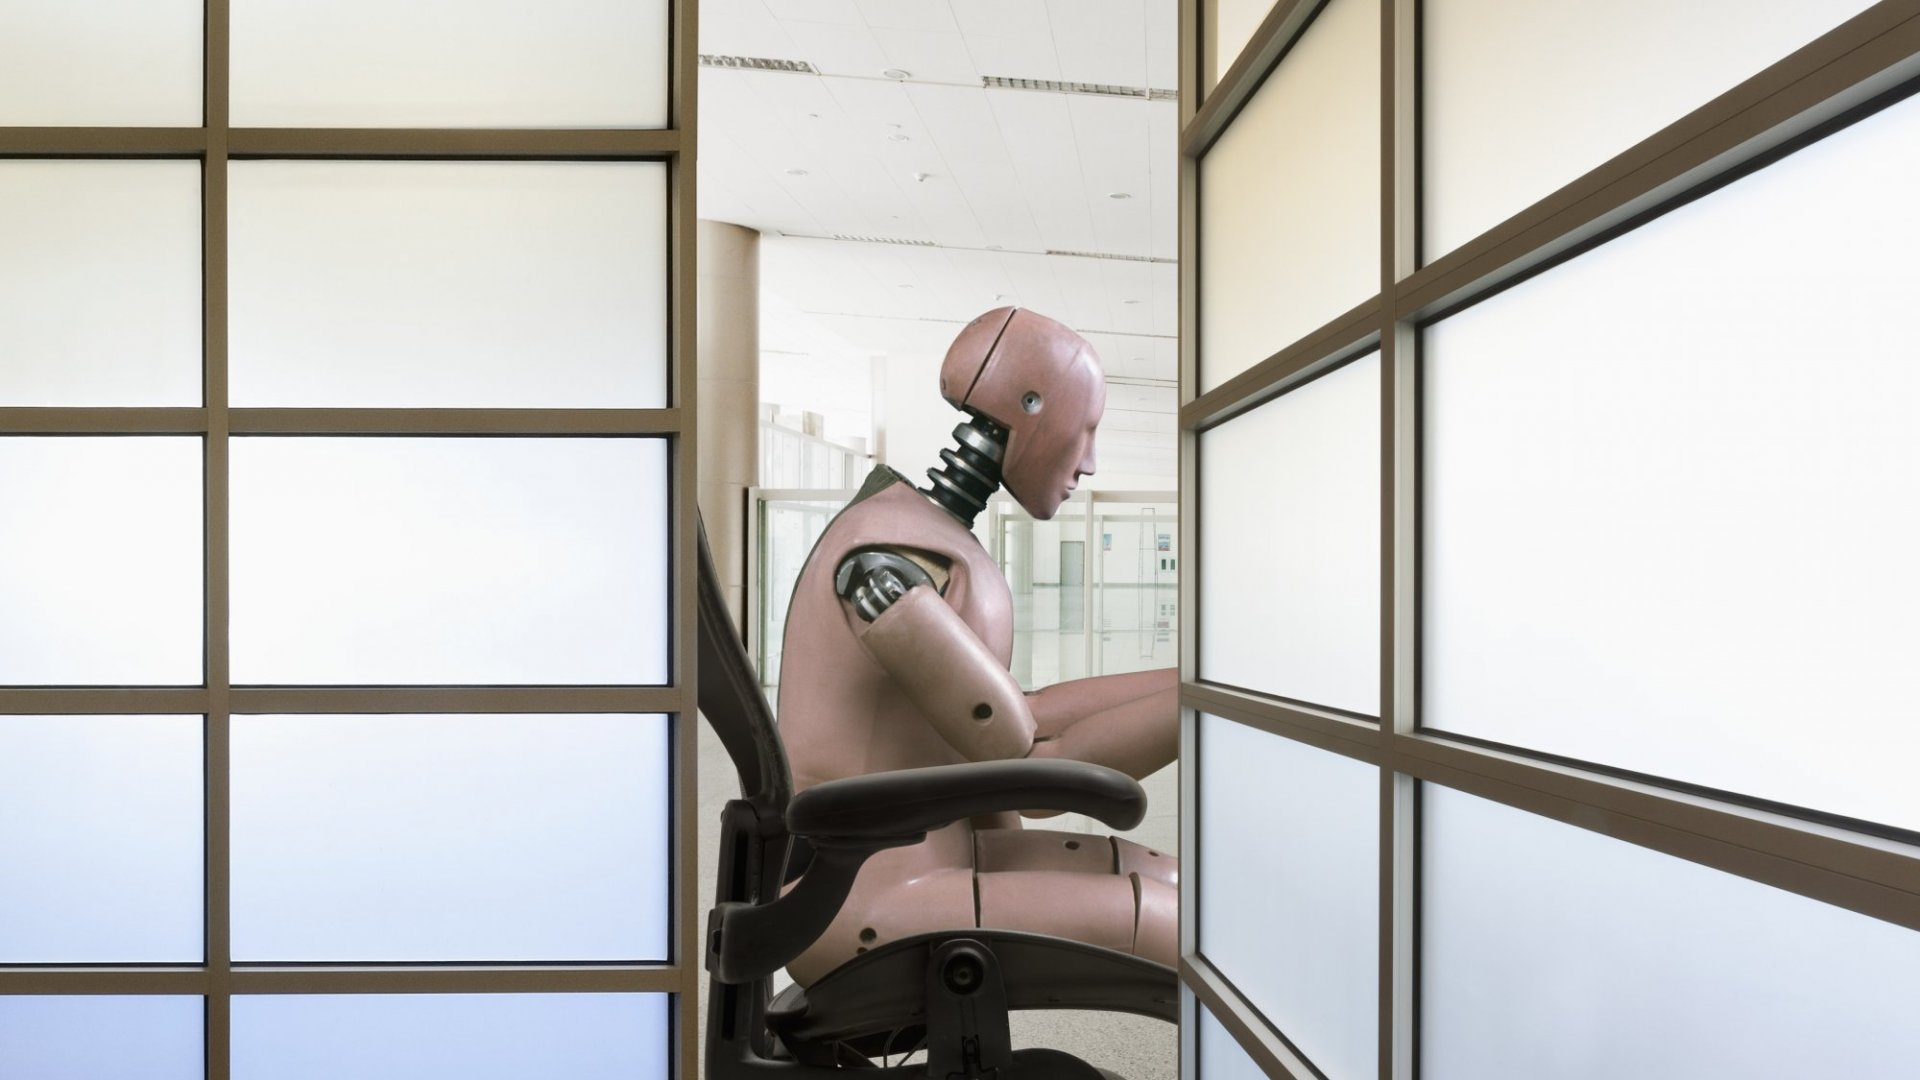 Robots Are Coming, But People Feel Jobs Are Secure